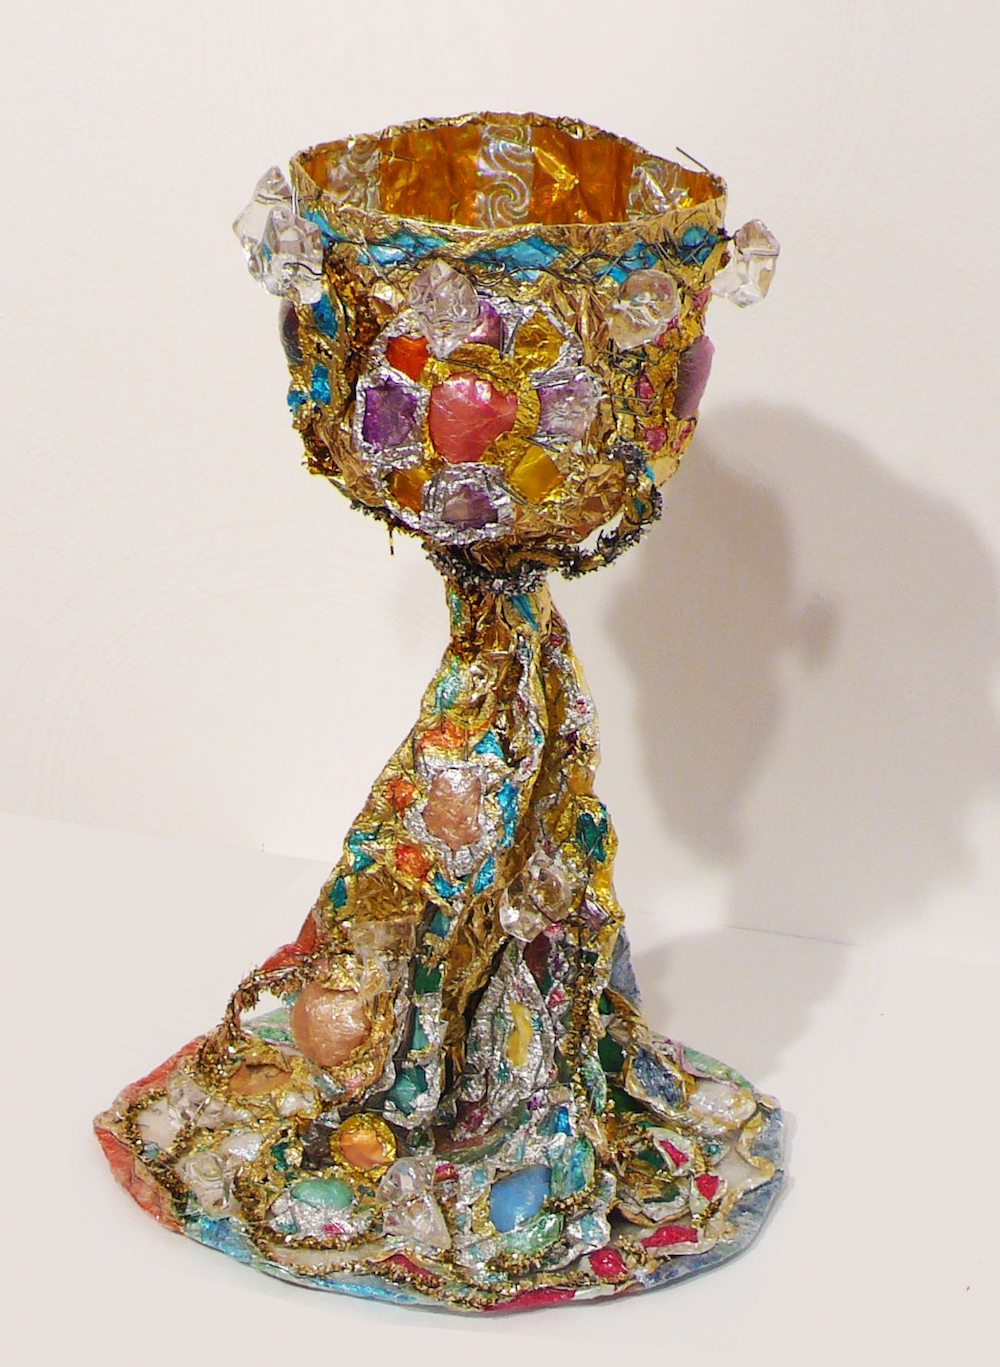 "Thomas Lanigan-Schmidt, Chalice Iv, ca. 1990s, aluminum foil, plastic wrap, holographic tape, pipe cleaners, glitter, staples, colored marker, 12 1/2 x 7 x 7""."